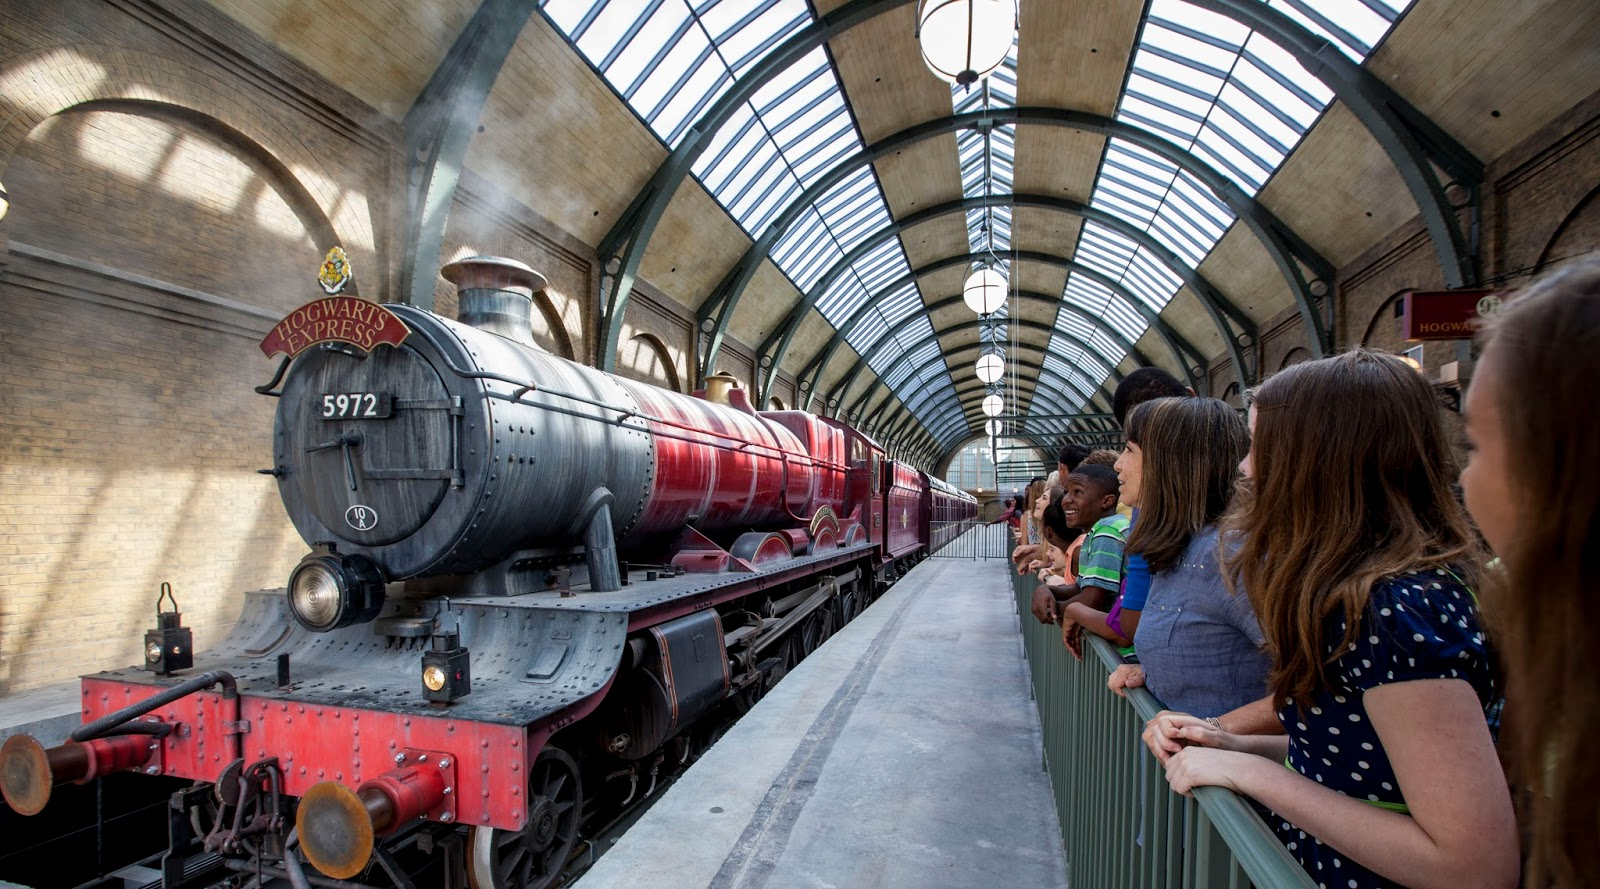 Parkscope: Diagon Alley- Hogwarts Express